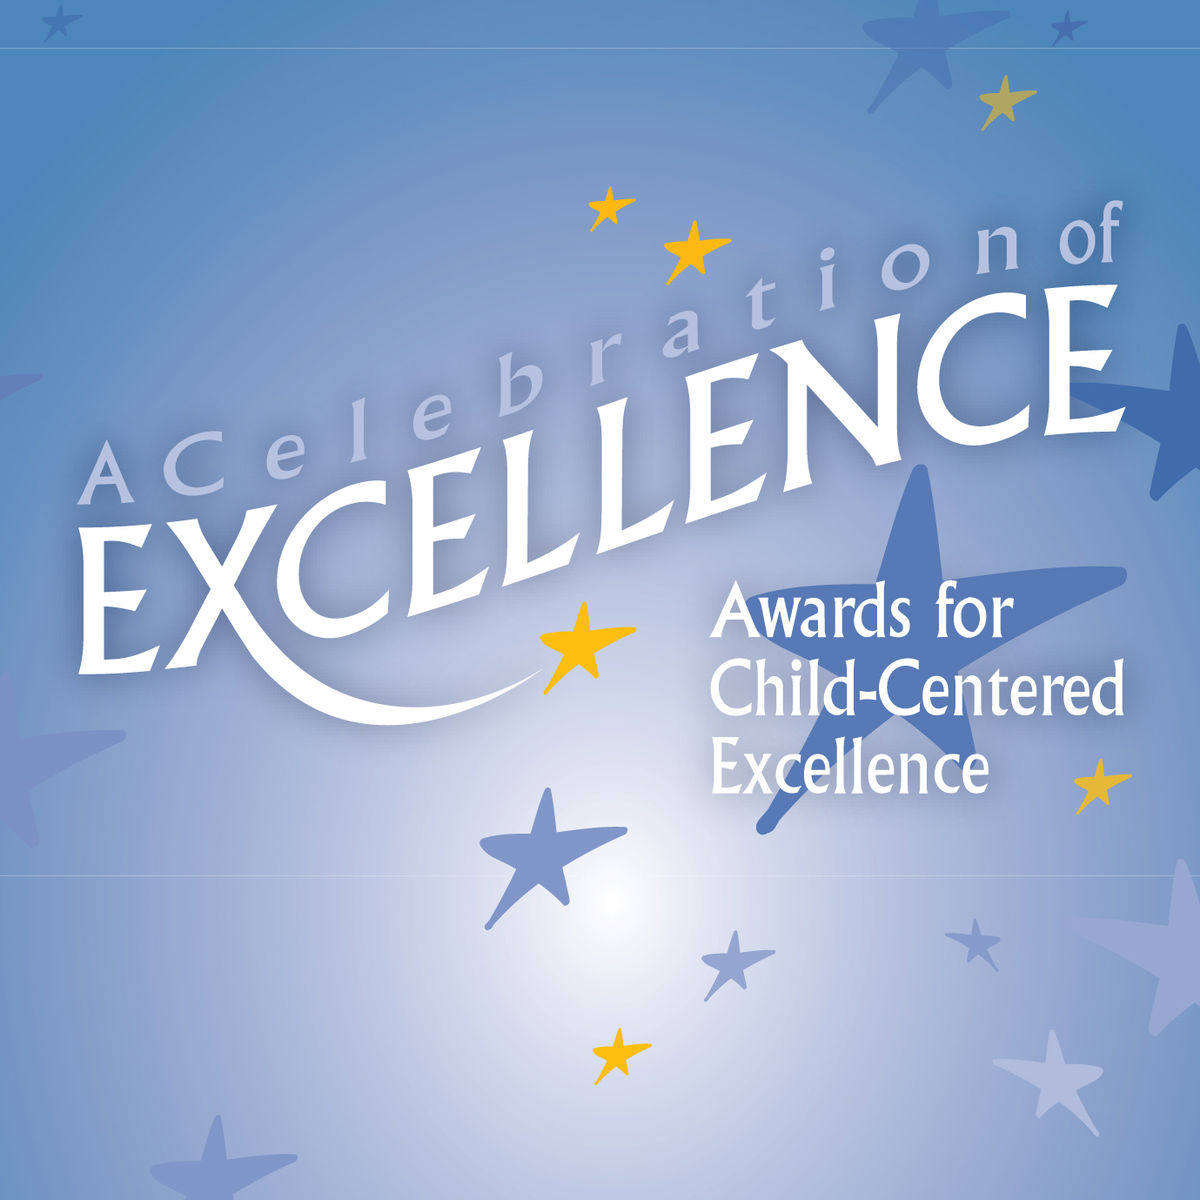 Announcing Minnetonka Awards for Child-Centered Excellence